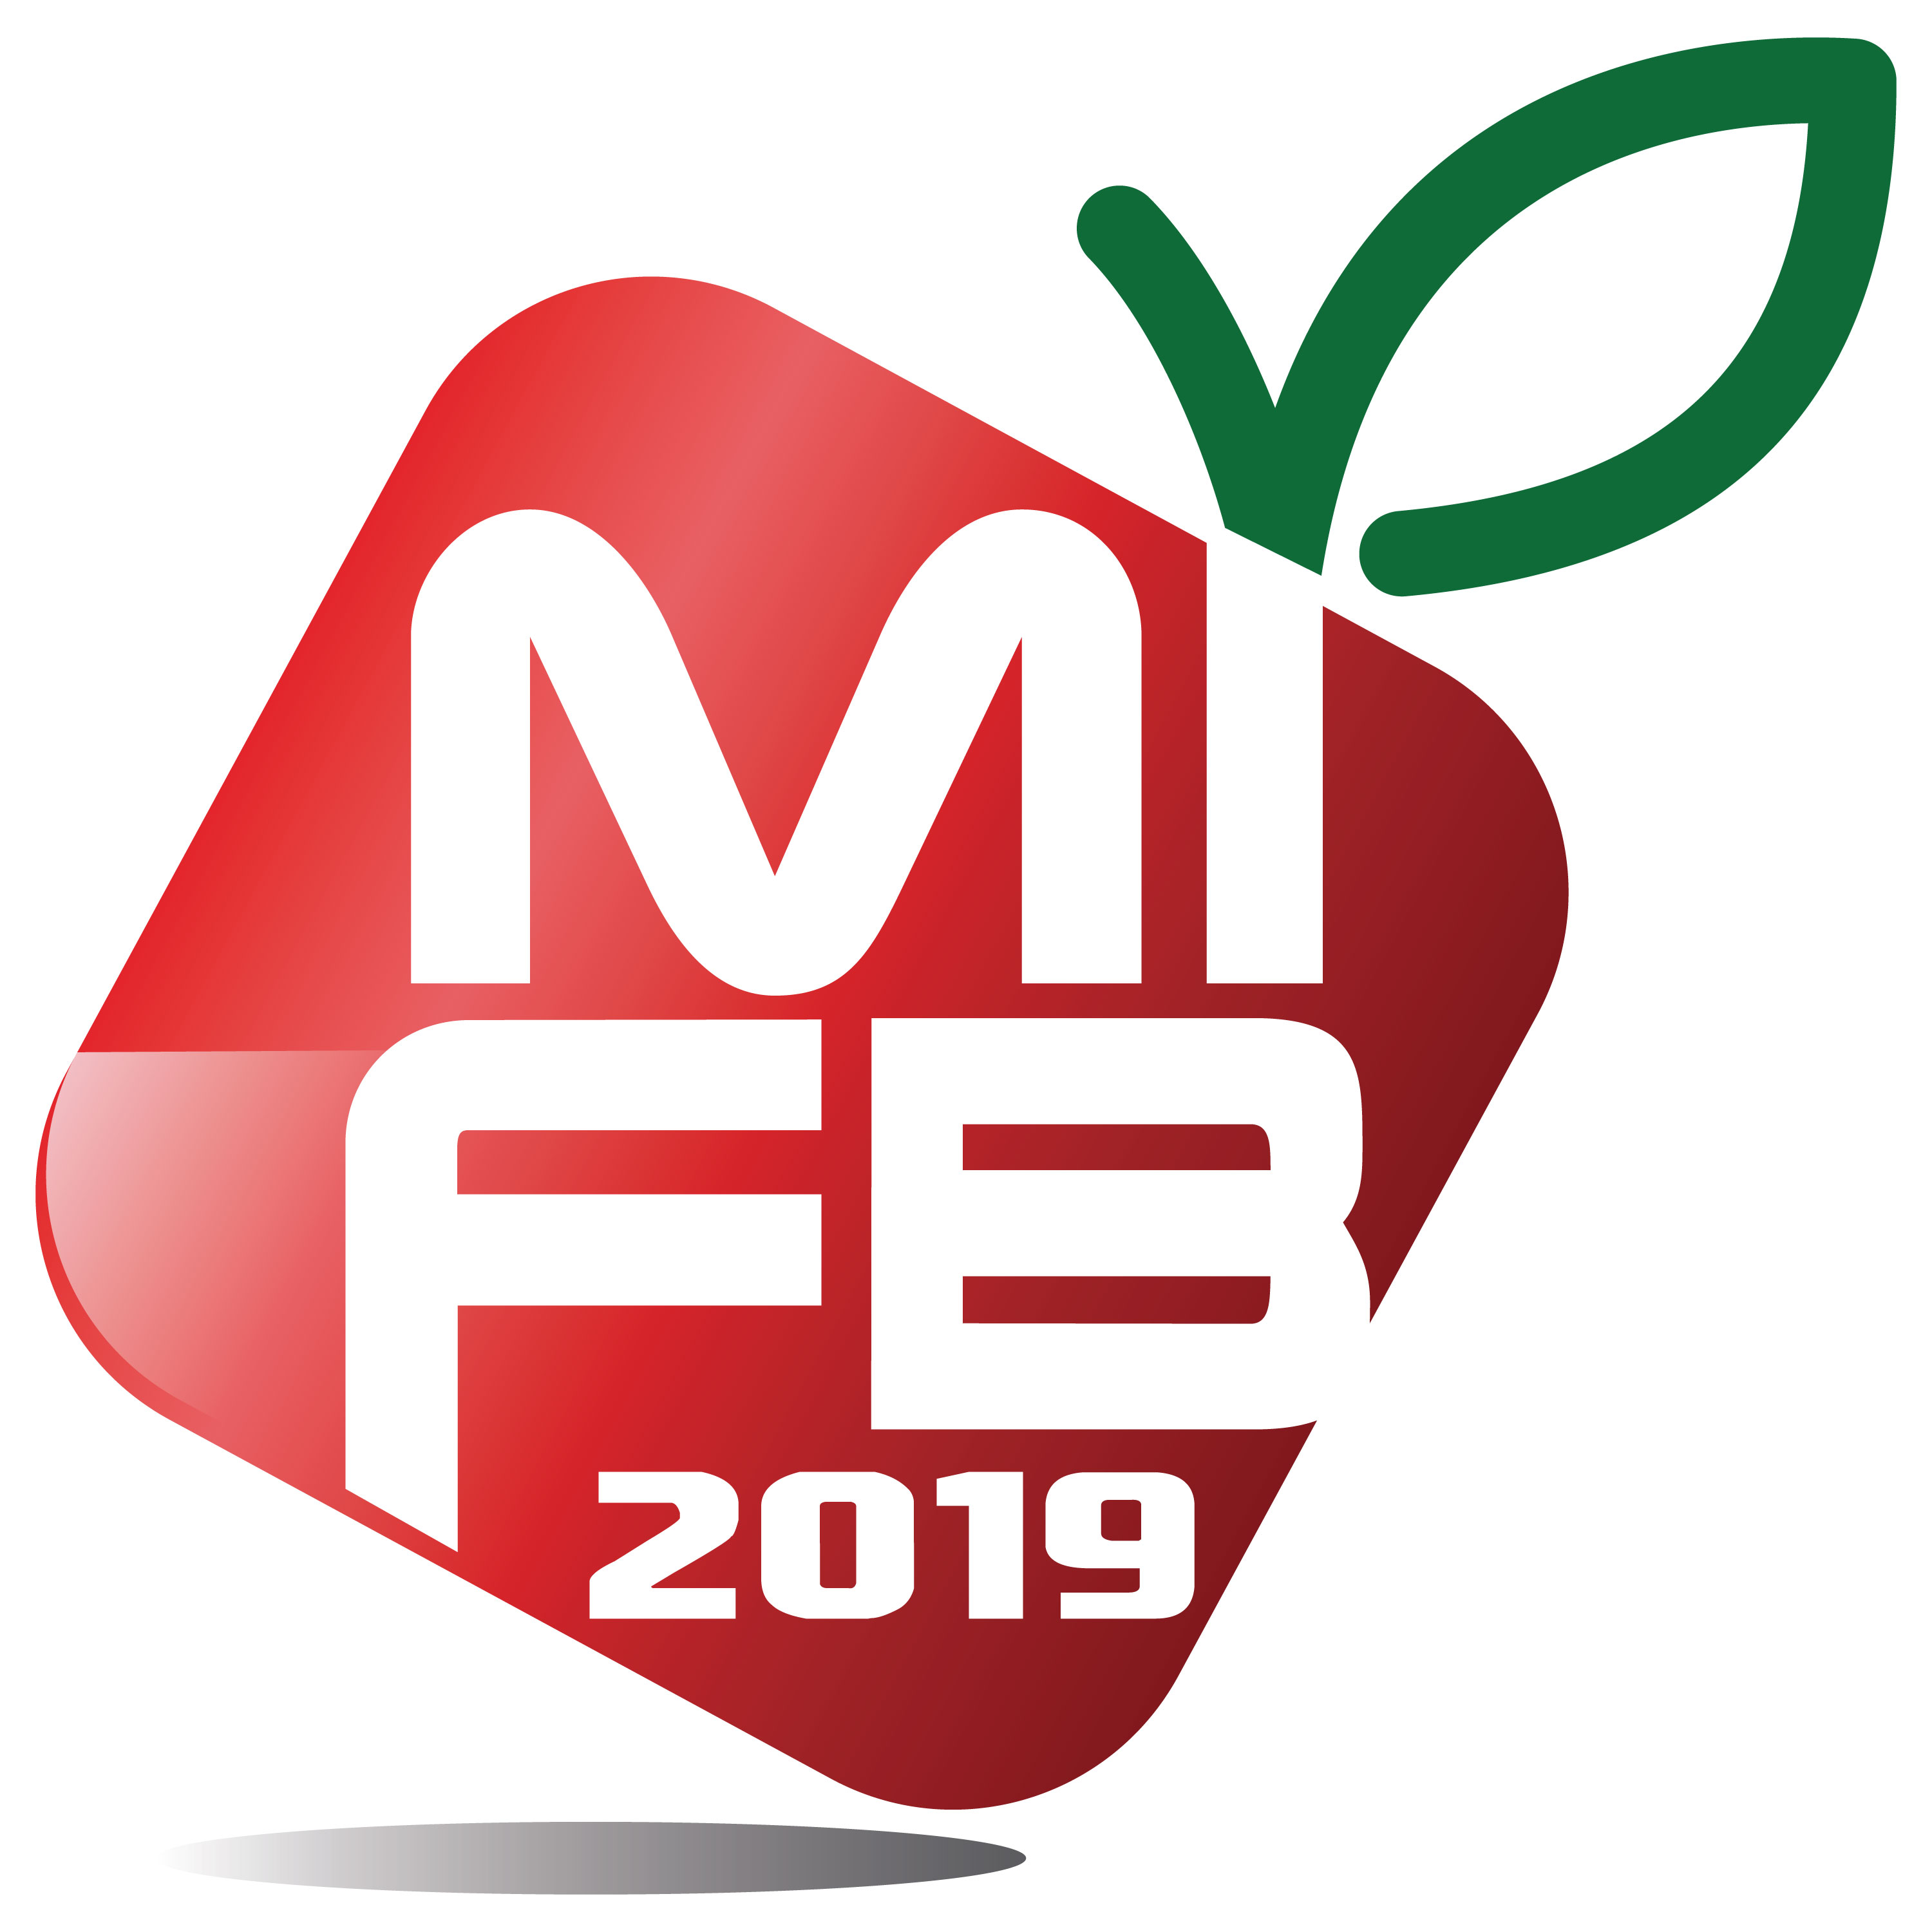 The 20th Malaysian International Food and Beverage (MIFB 2019)